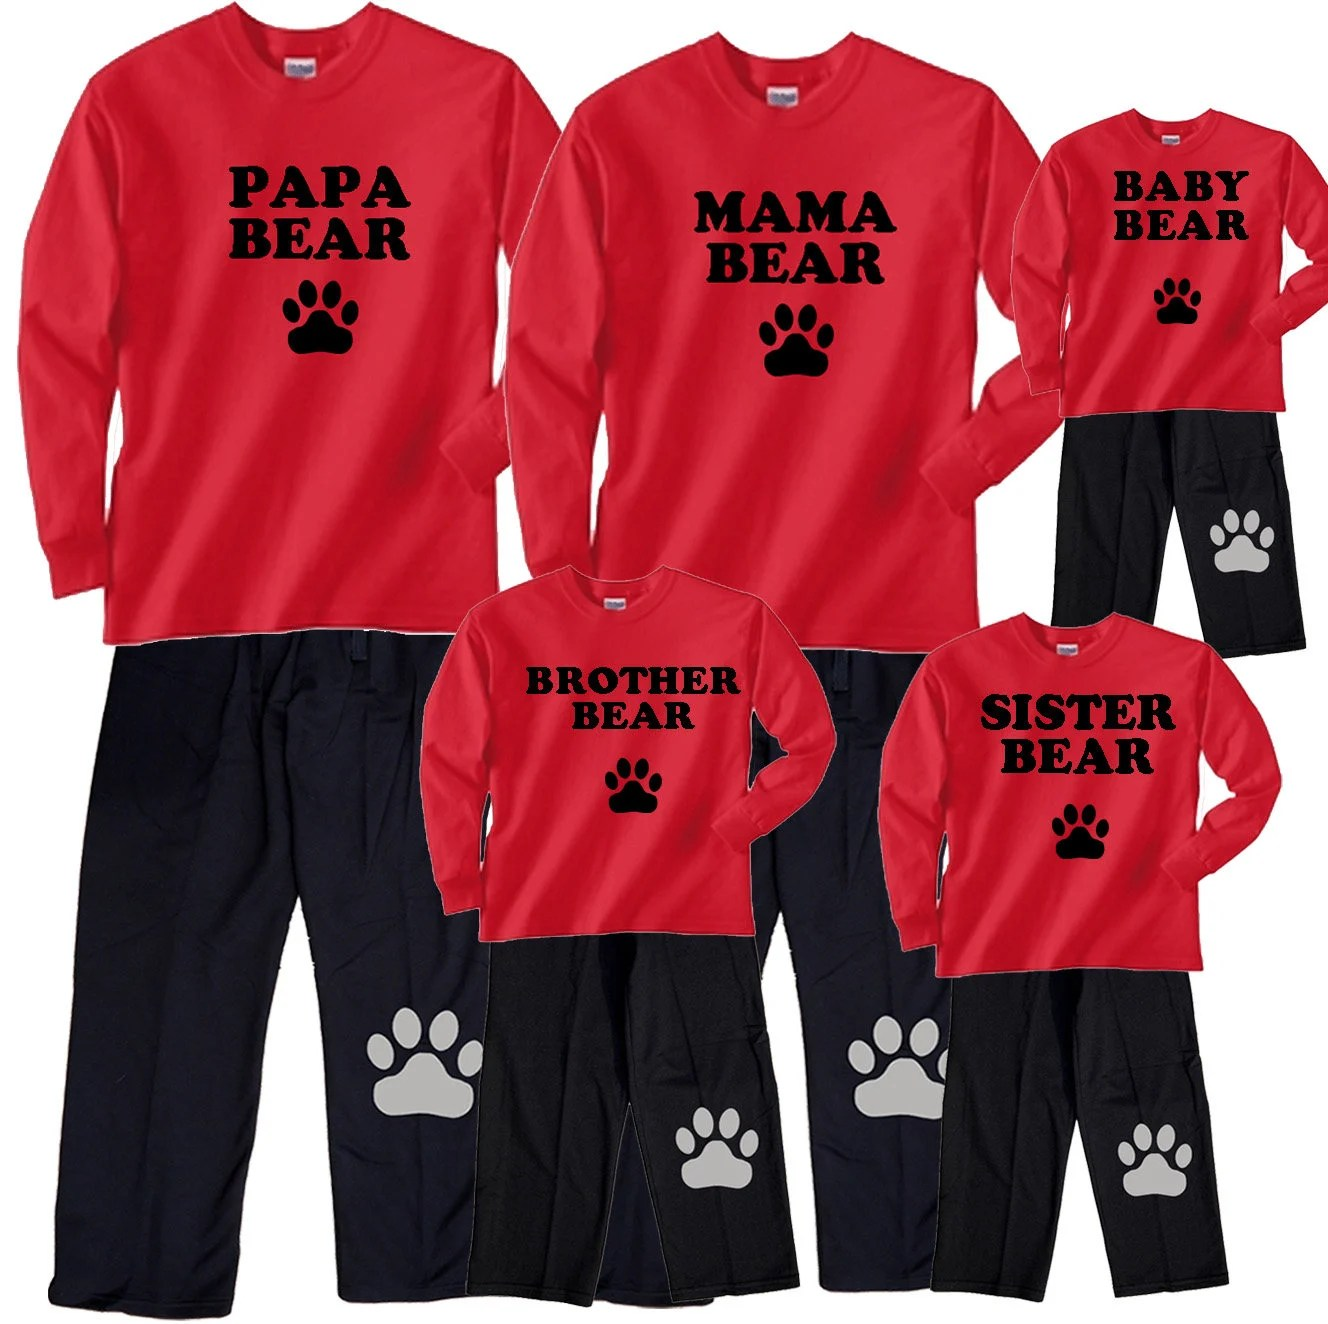 Bear Family Matching Pajamas In Red In Sizes For Mama Bear